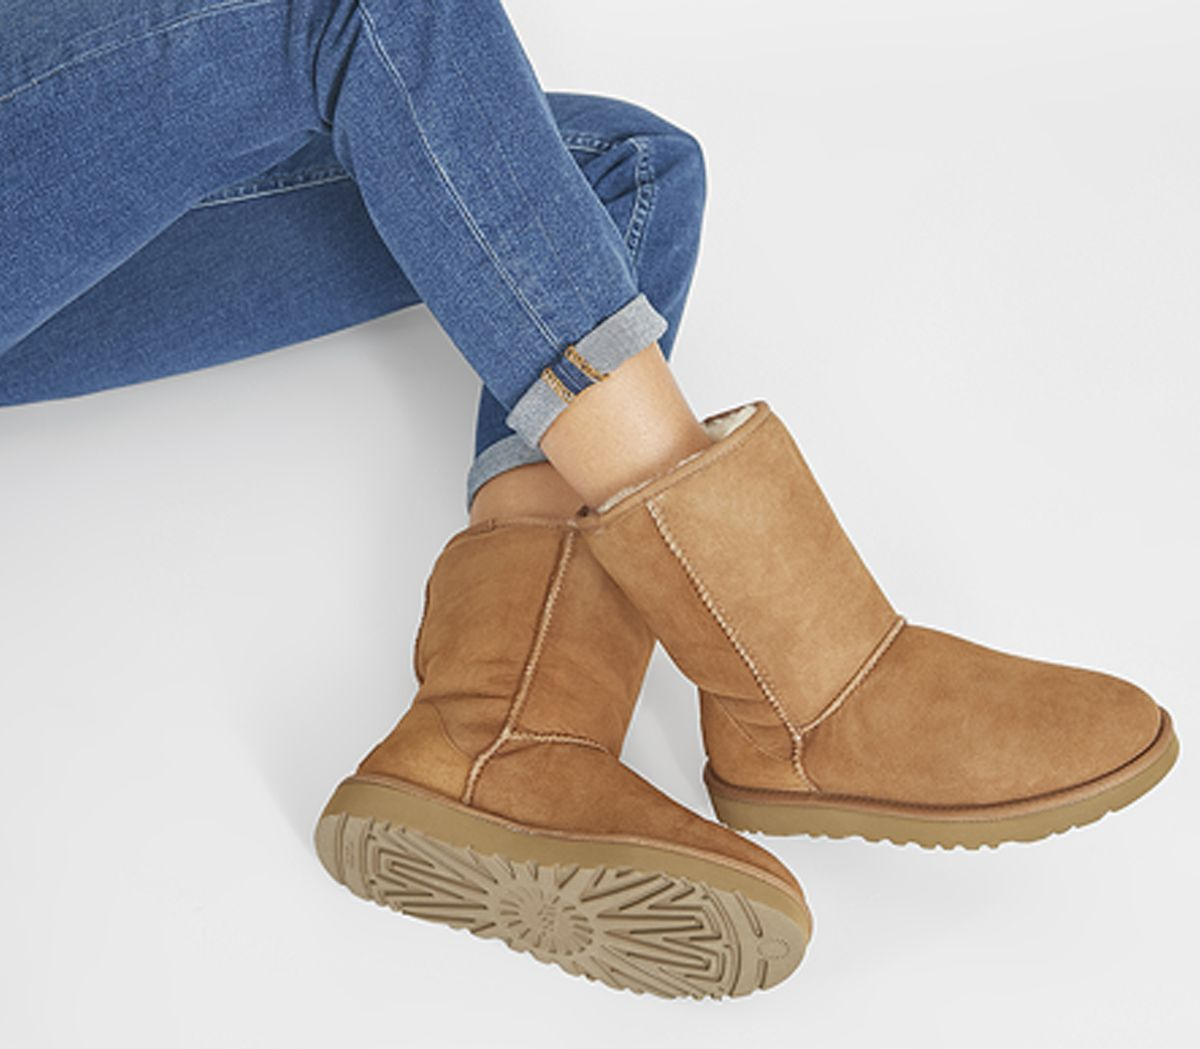 00e1feb59fe UGG Classic Short II Boots Chestnut Suede - Ankle Boots